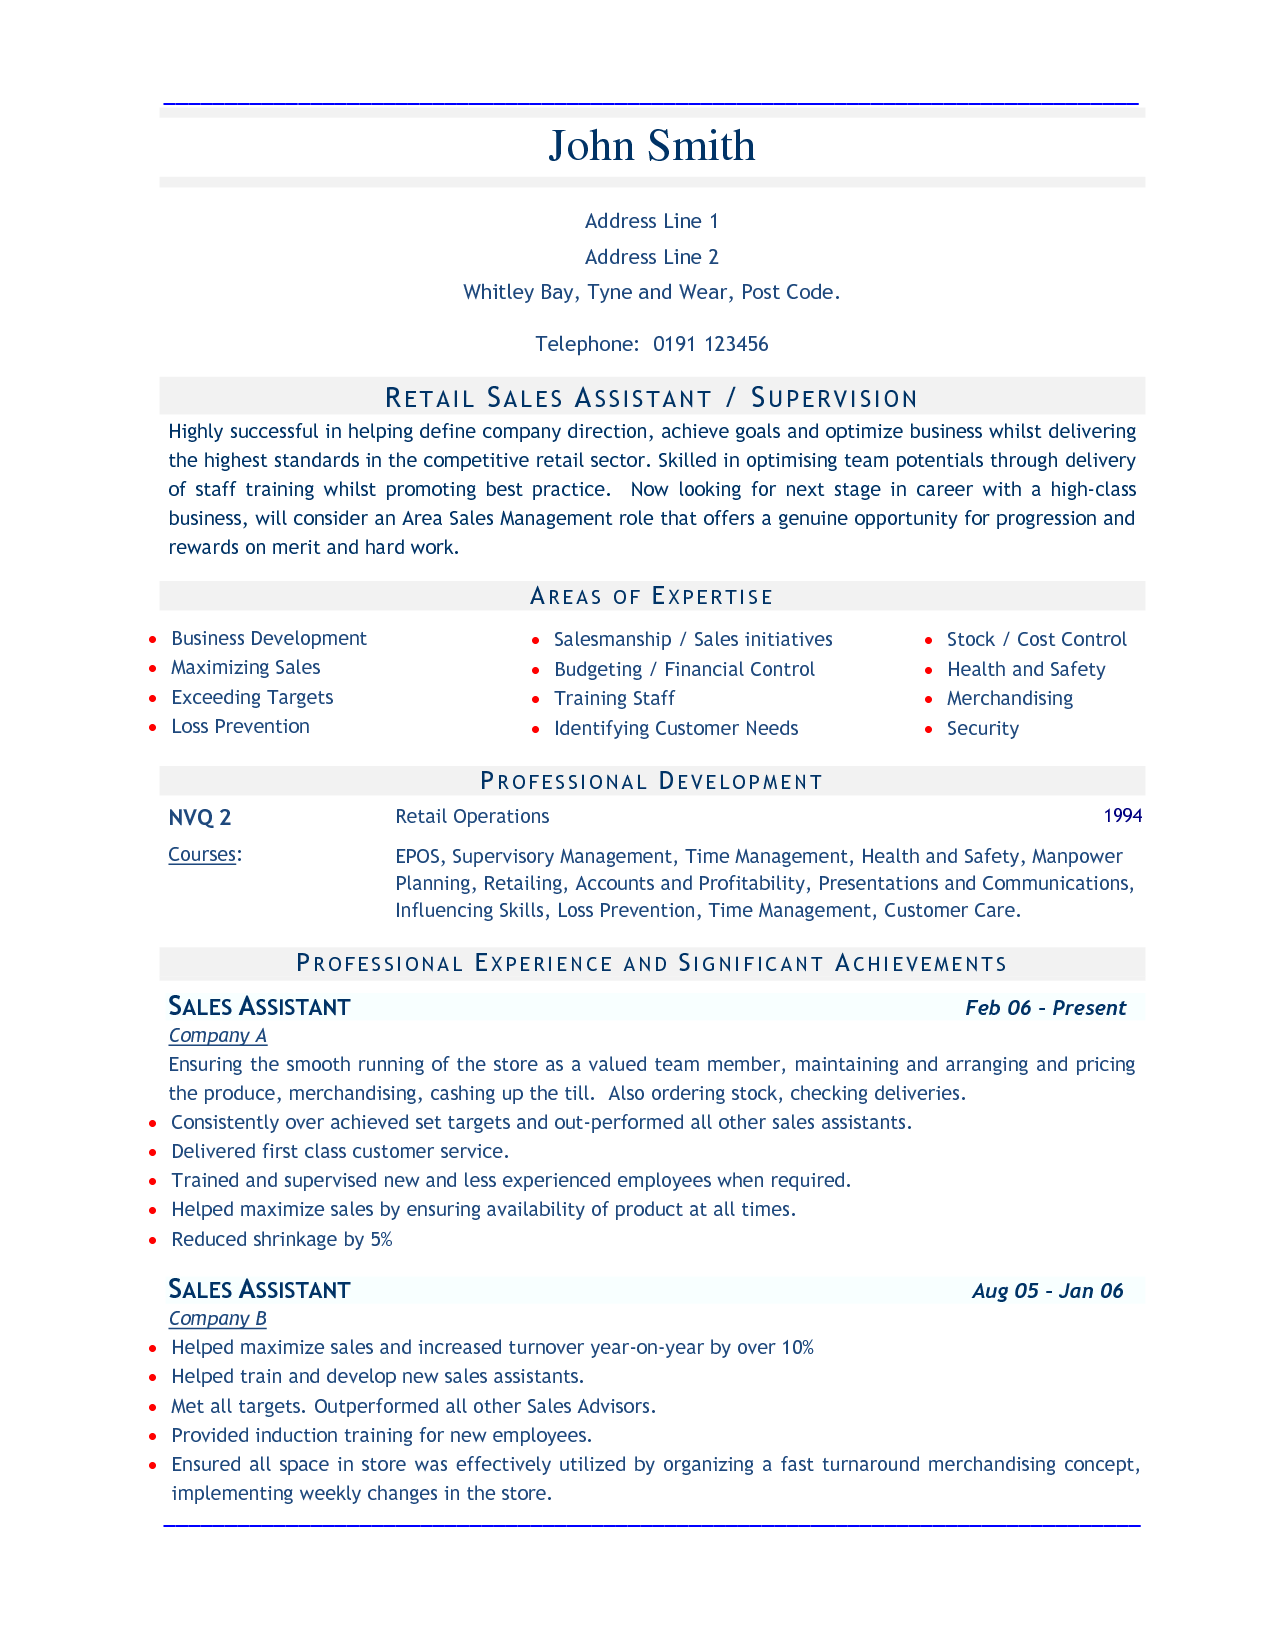 sales cv template sales cv account manager sales rep cv resume free resume templates resume cover